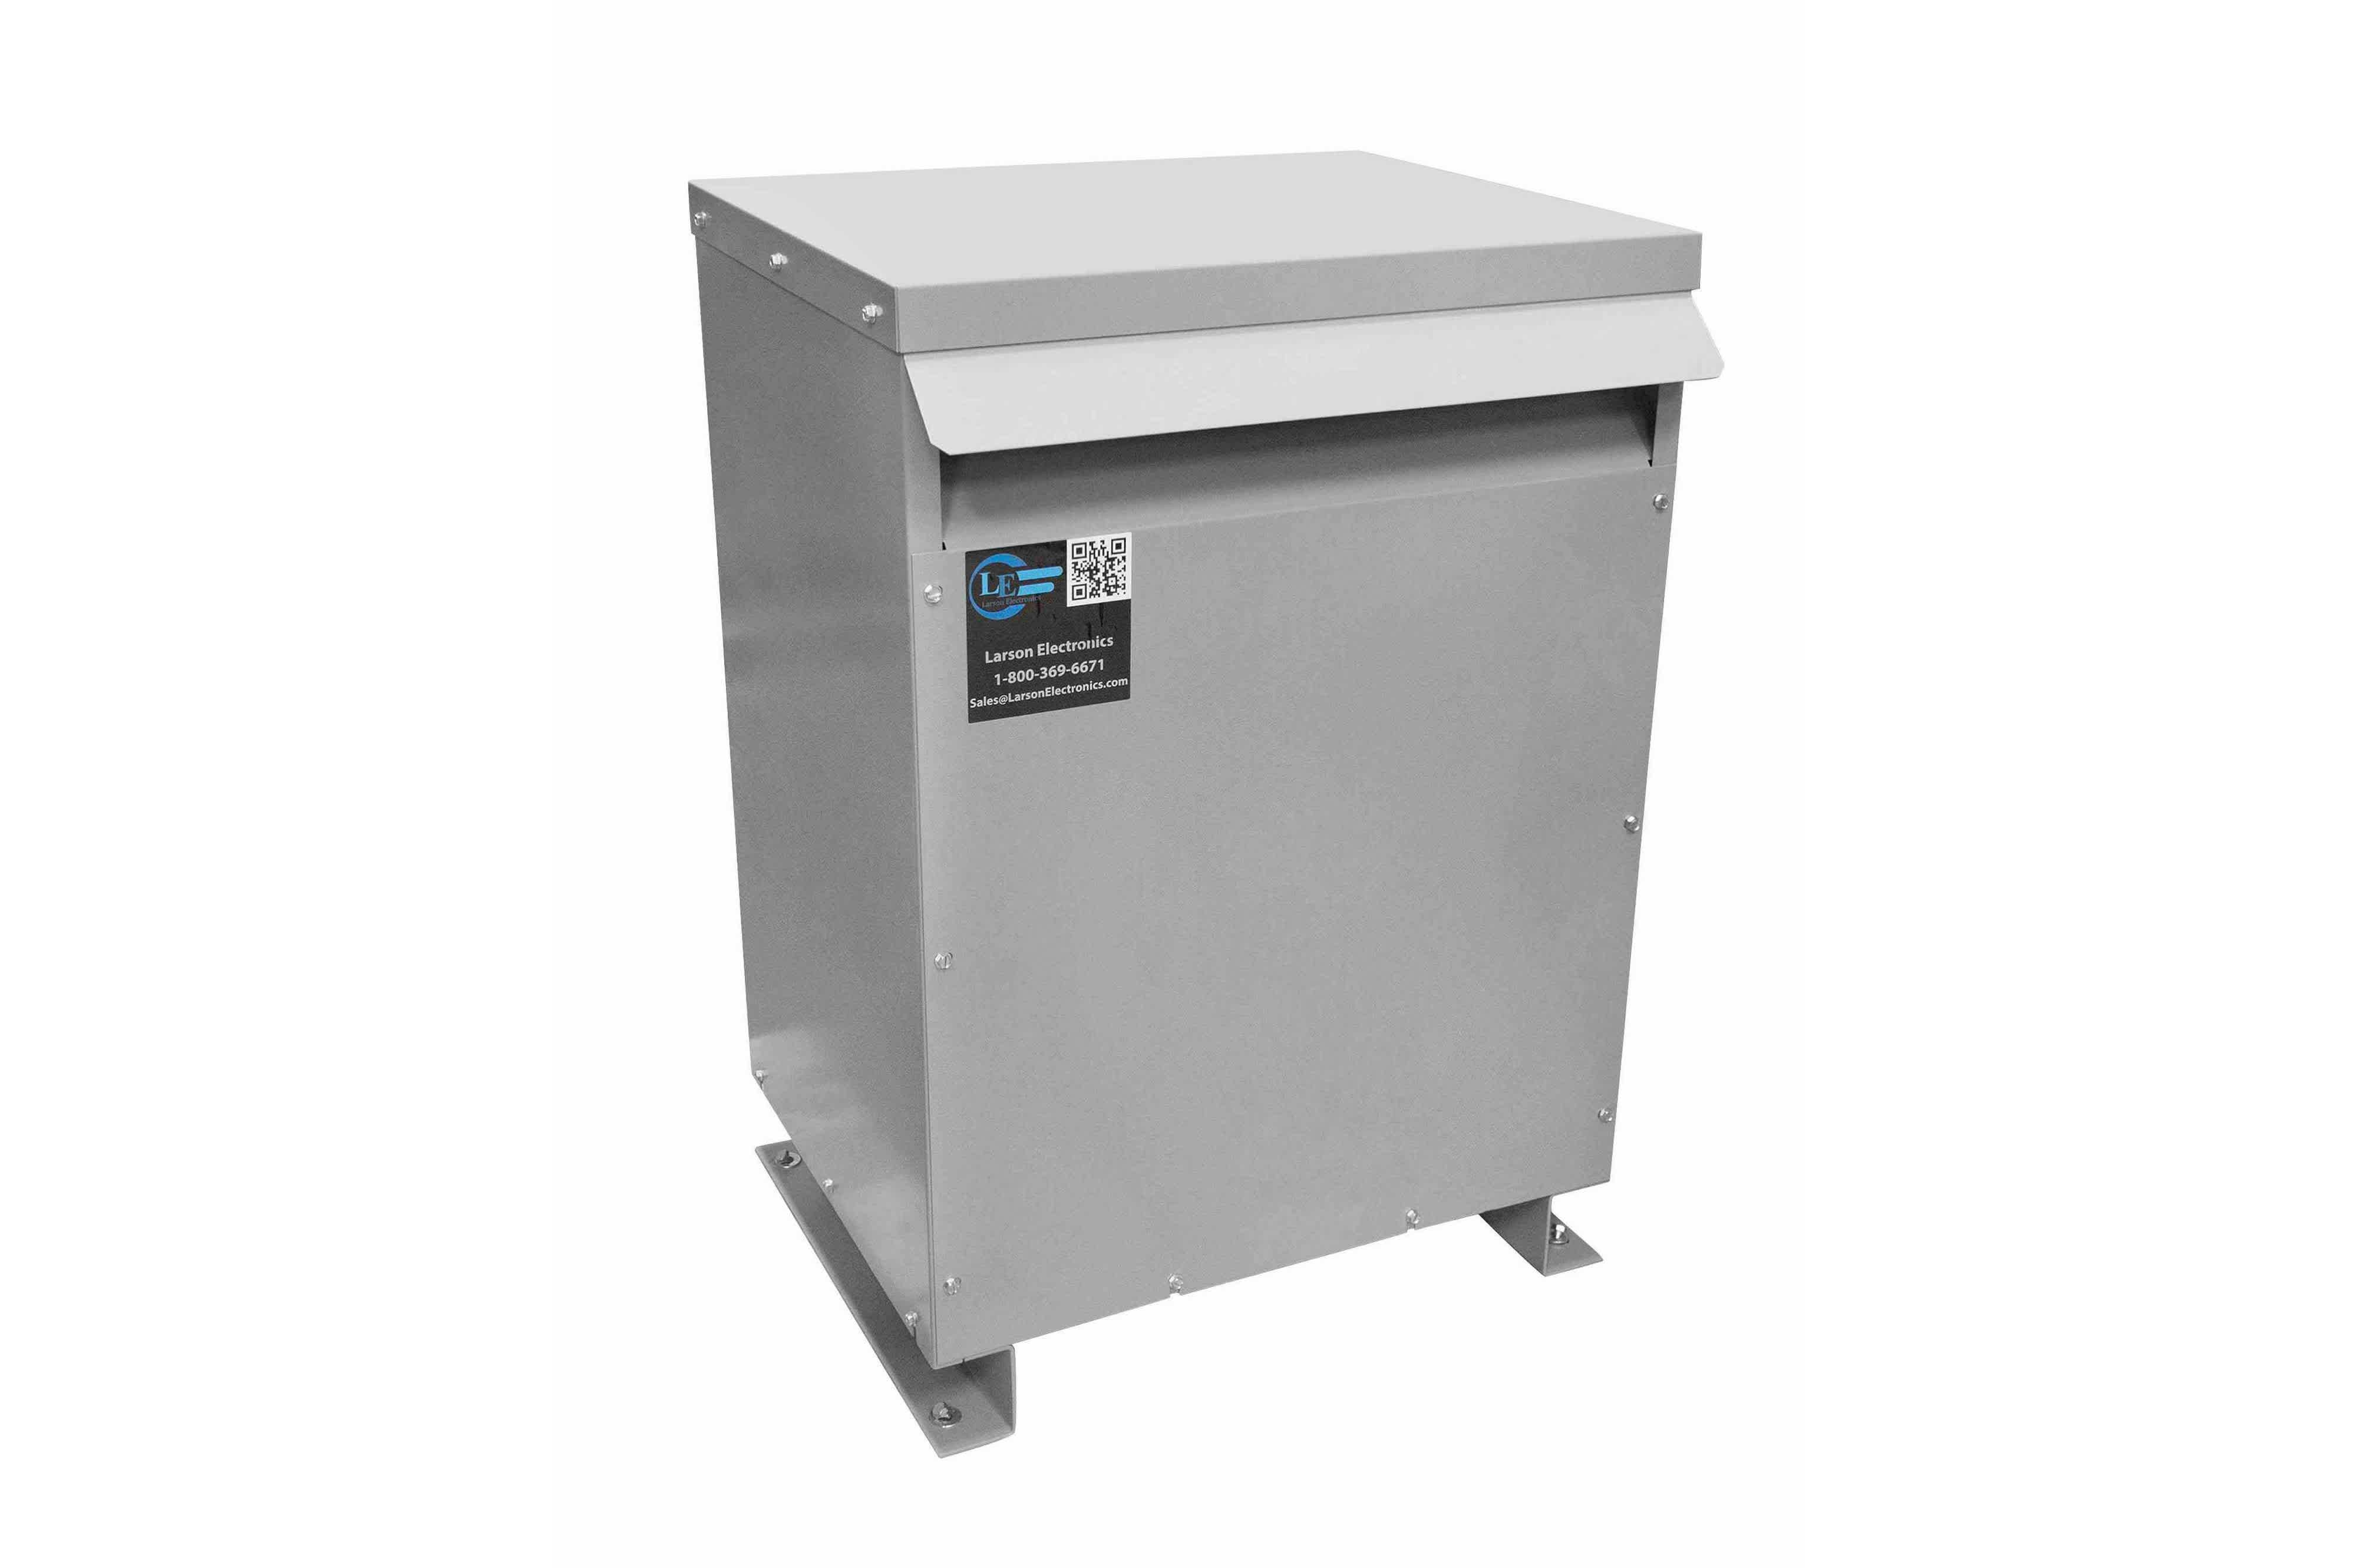 38 kVA 3PH Isolation Transformer, 380V Wye Primary, 600Y/347 Wye-N Secondary, N3R, Ventilated, 60 Hz